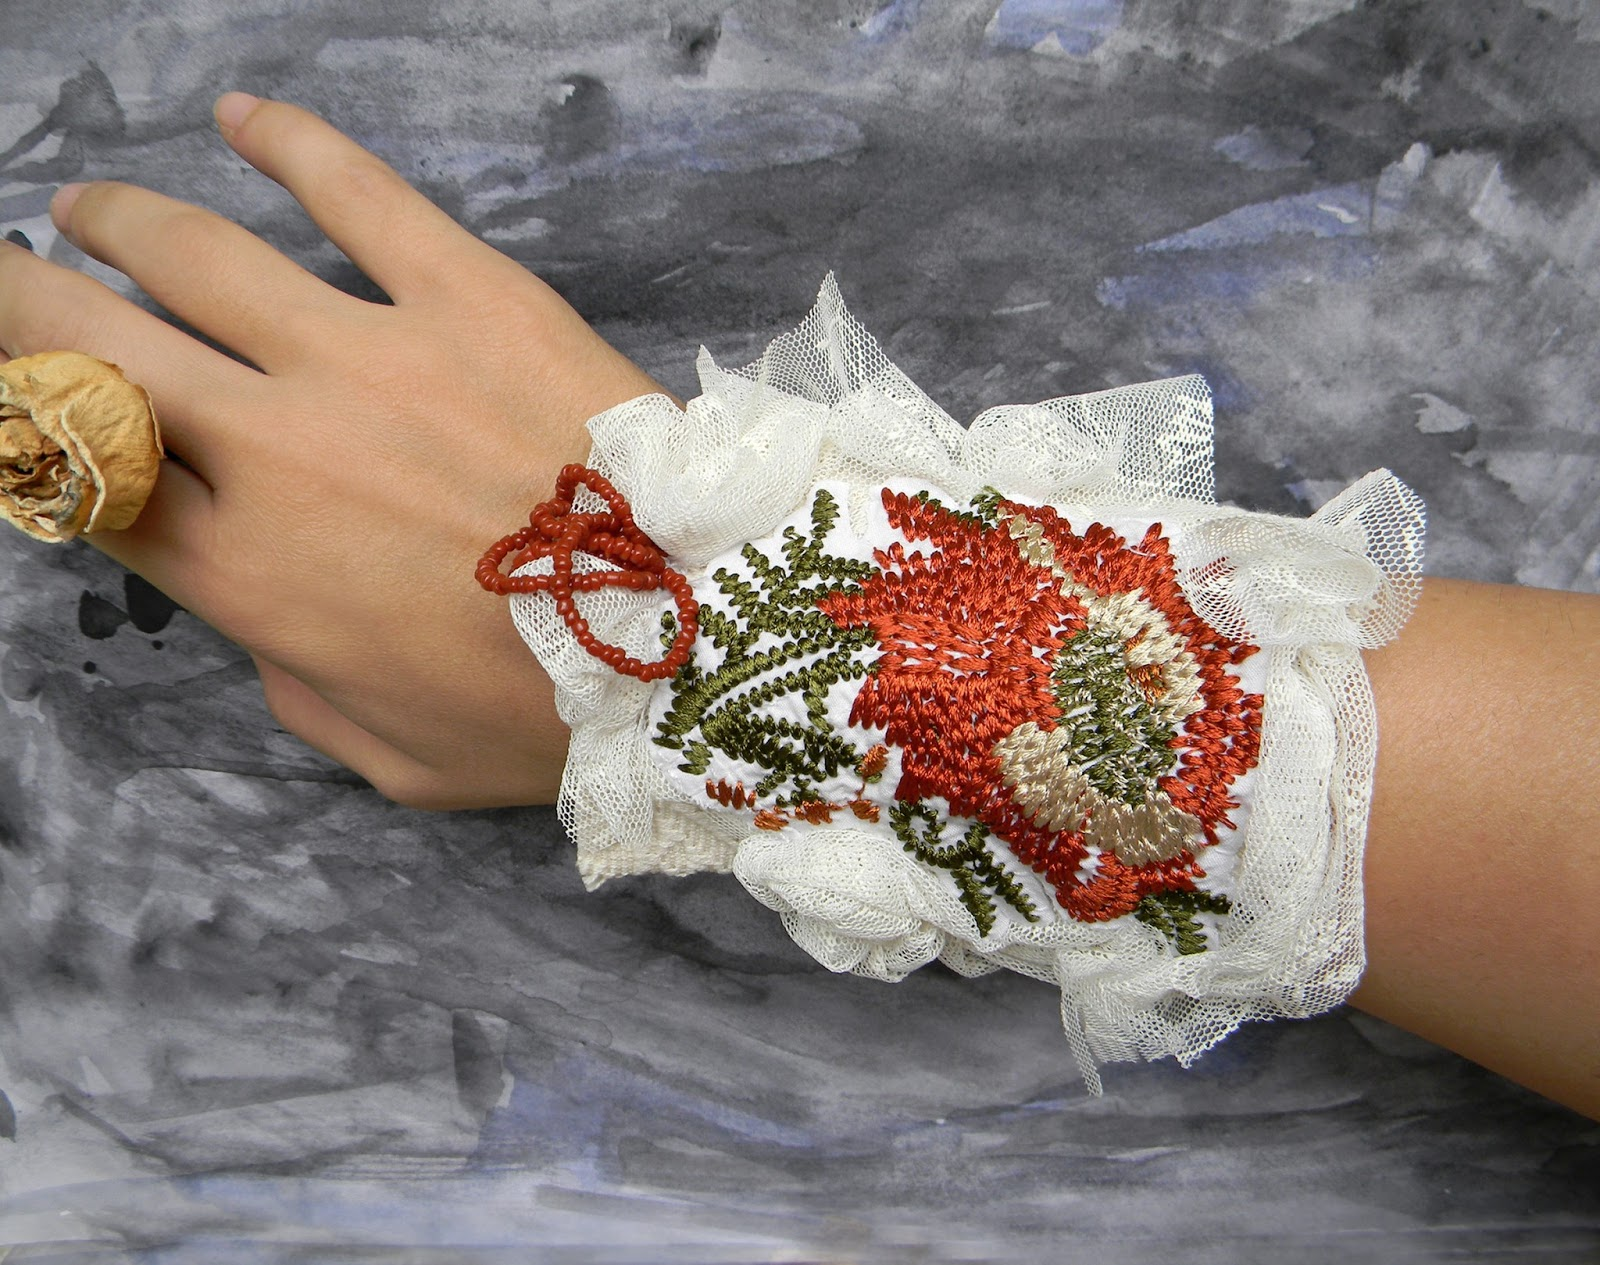 Unique Handcrafted Wrist Cuffs Textile Jewelry Shabby Bracelet